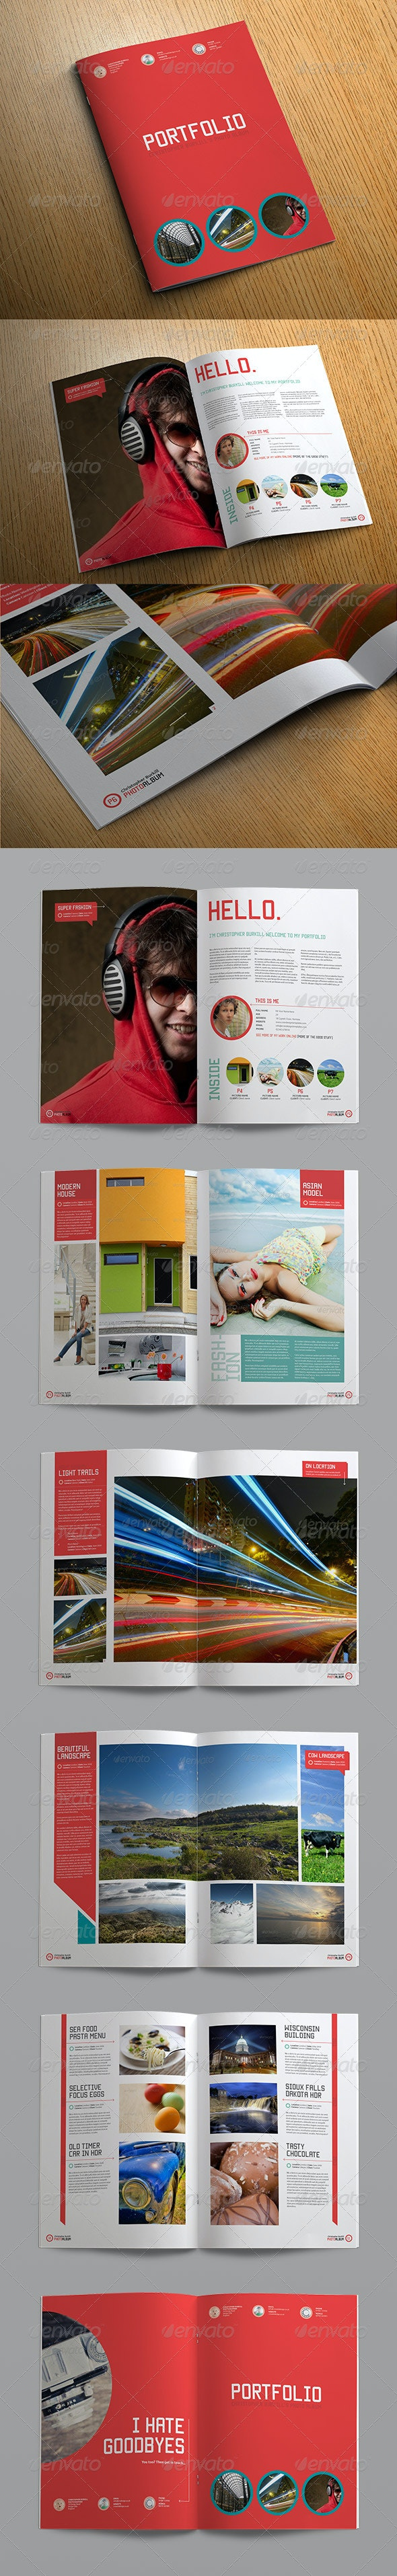 Sleek Photo Album Portfolio - Photo Albums Print Templates